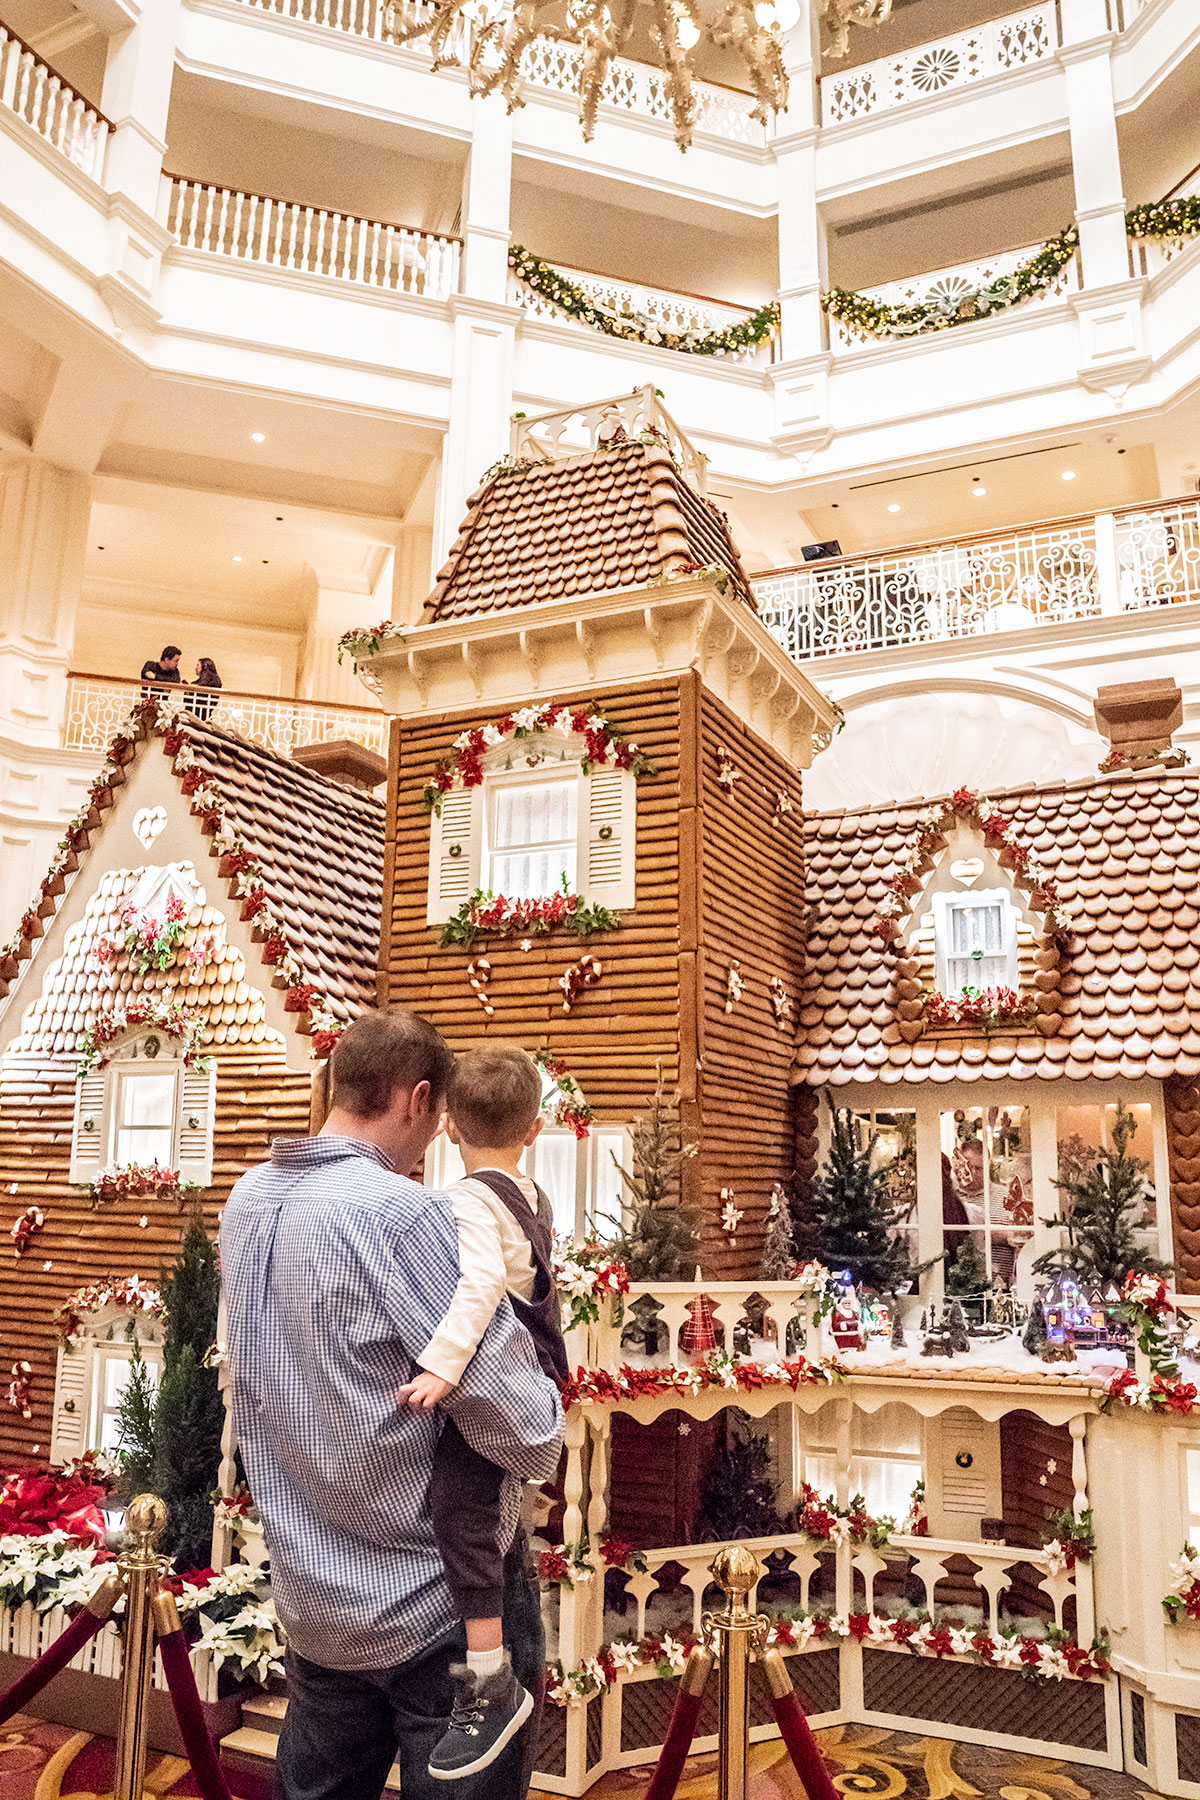 Gingerbread-House-Walt-Disney-World-at-Christmas